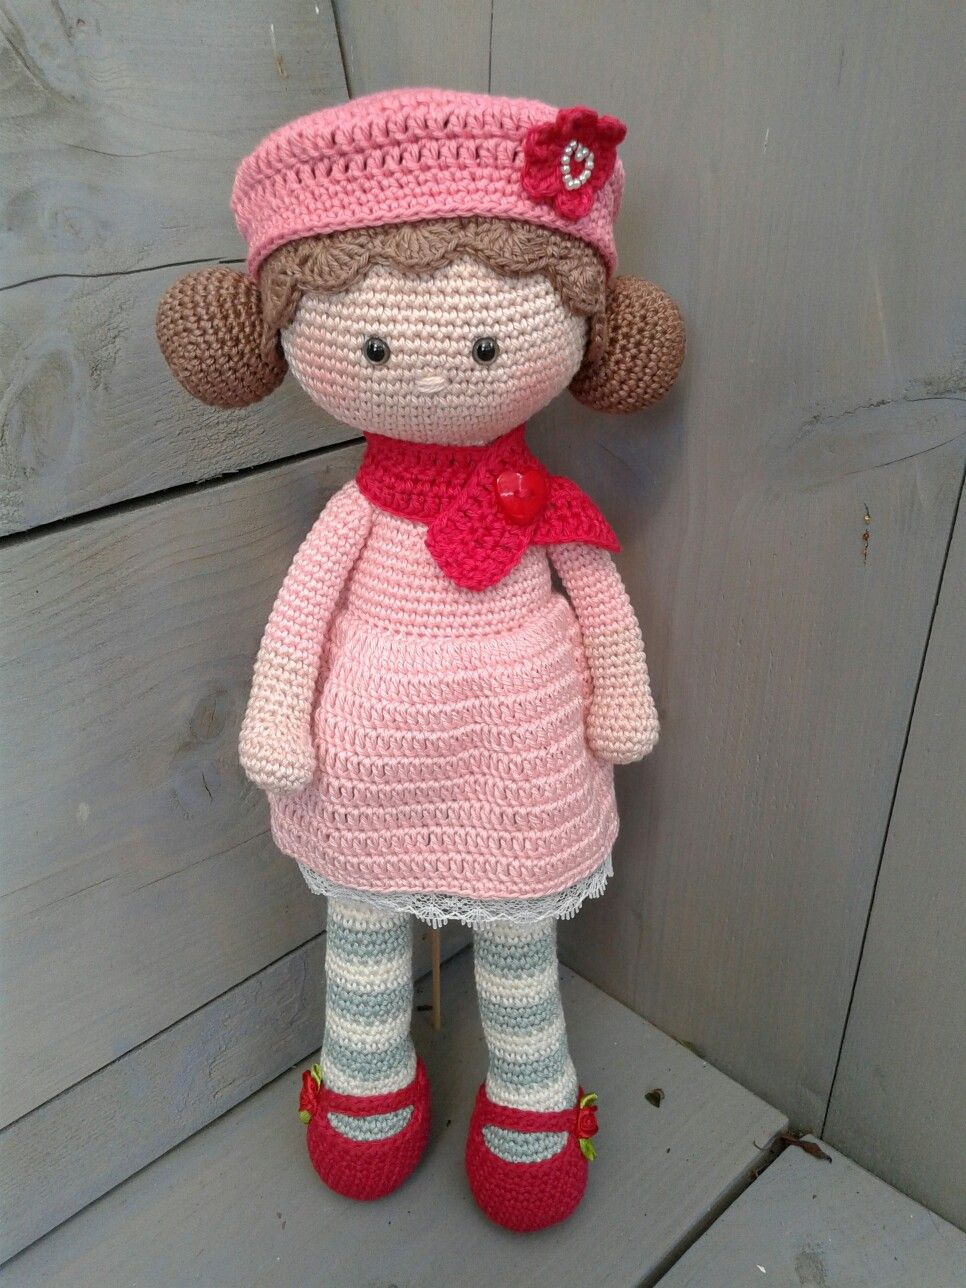 Pin by rina brand on eigen haakwerk pinterest amigurumi crochet toys crochet doll clothes crochet animals kids crochet le crochet doll patterns crochet pattern amigurumi doll dolls bankloansurffo Choice Image